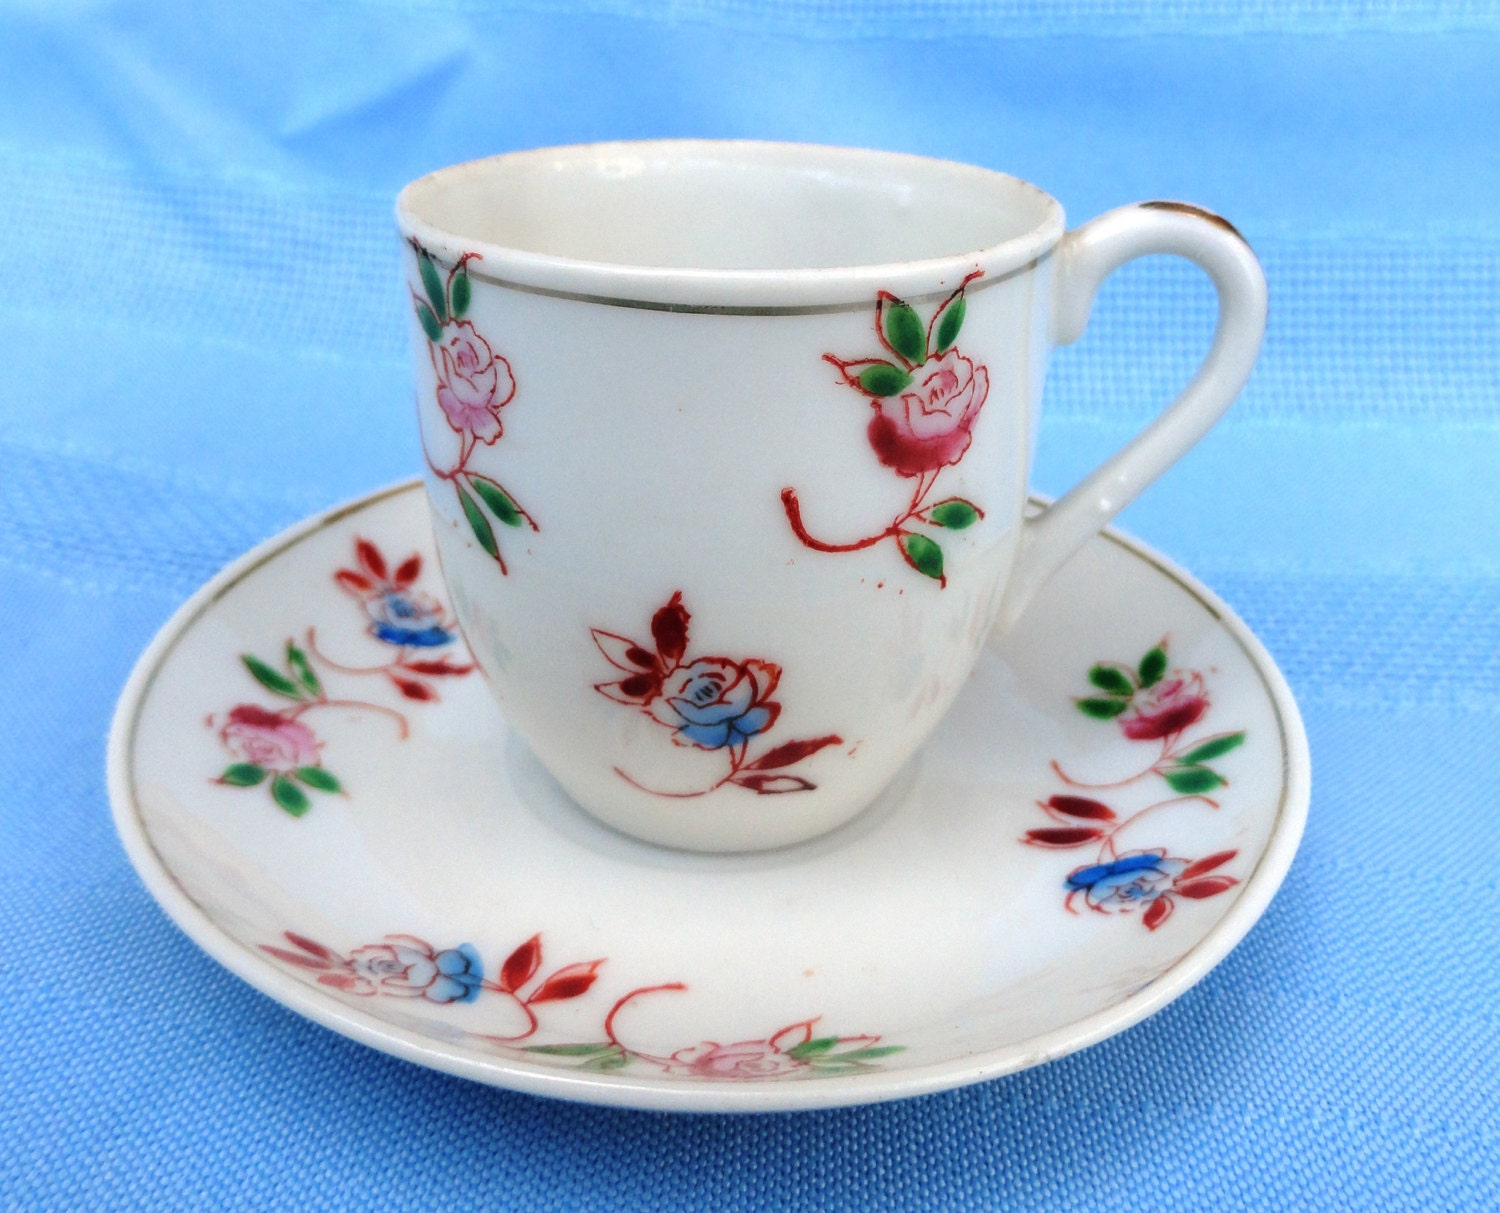 Miniature Occupied Japan Teacup And Saucer Fine By